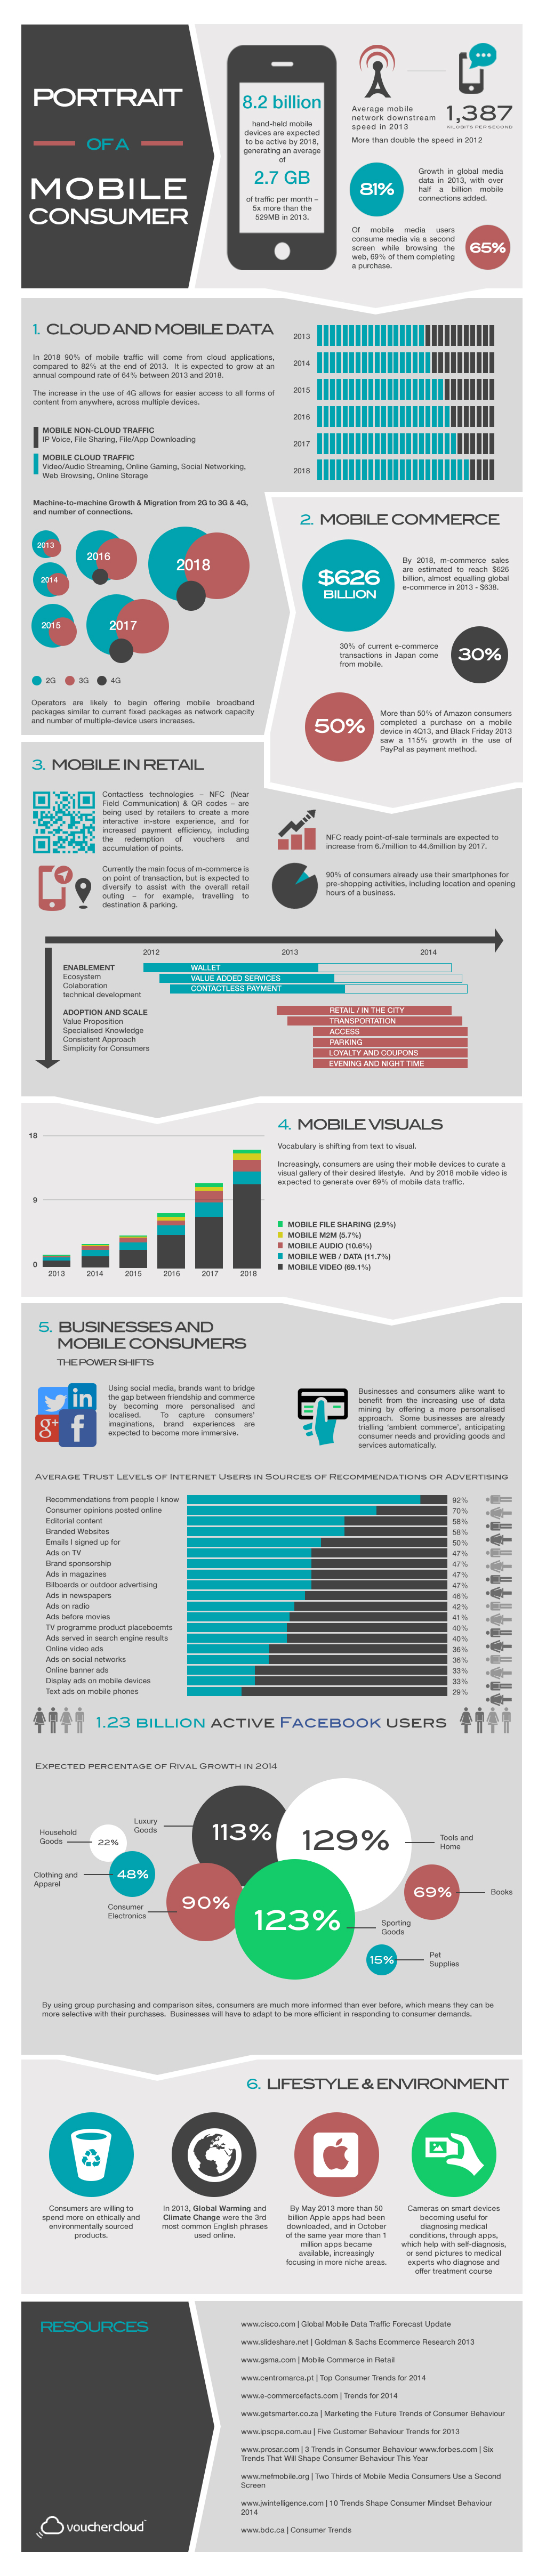 Portrait of a Mobile Consumer: Infographic